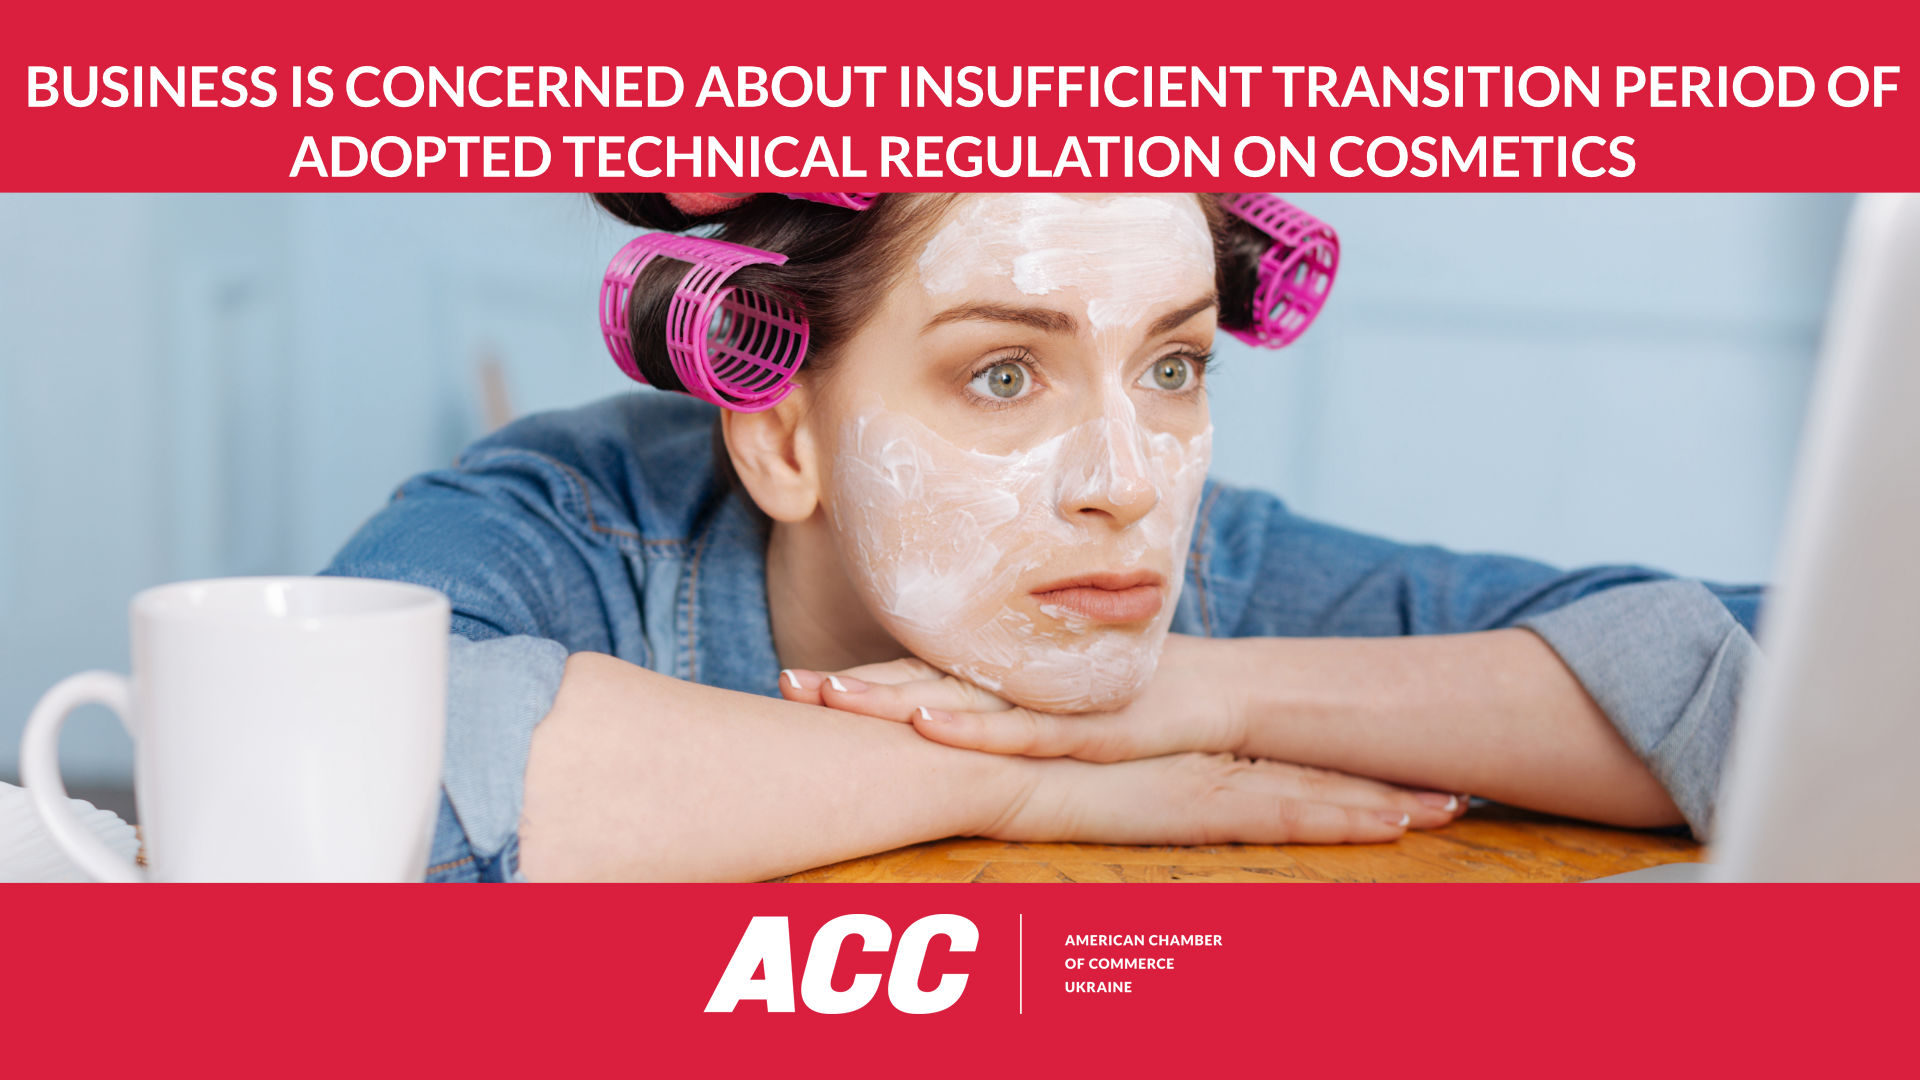 Business Is Concerned about Insufficient Transition Period of Adopted Technical Regulation on Cosmetics